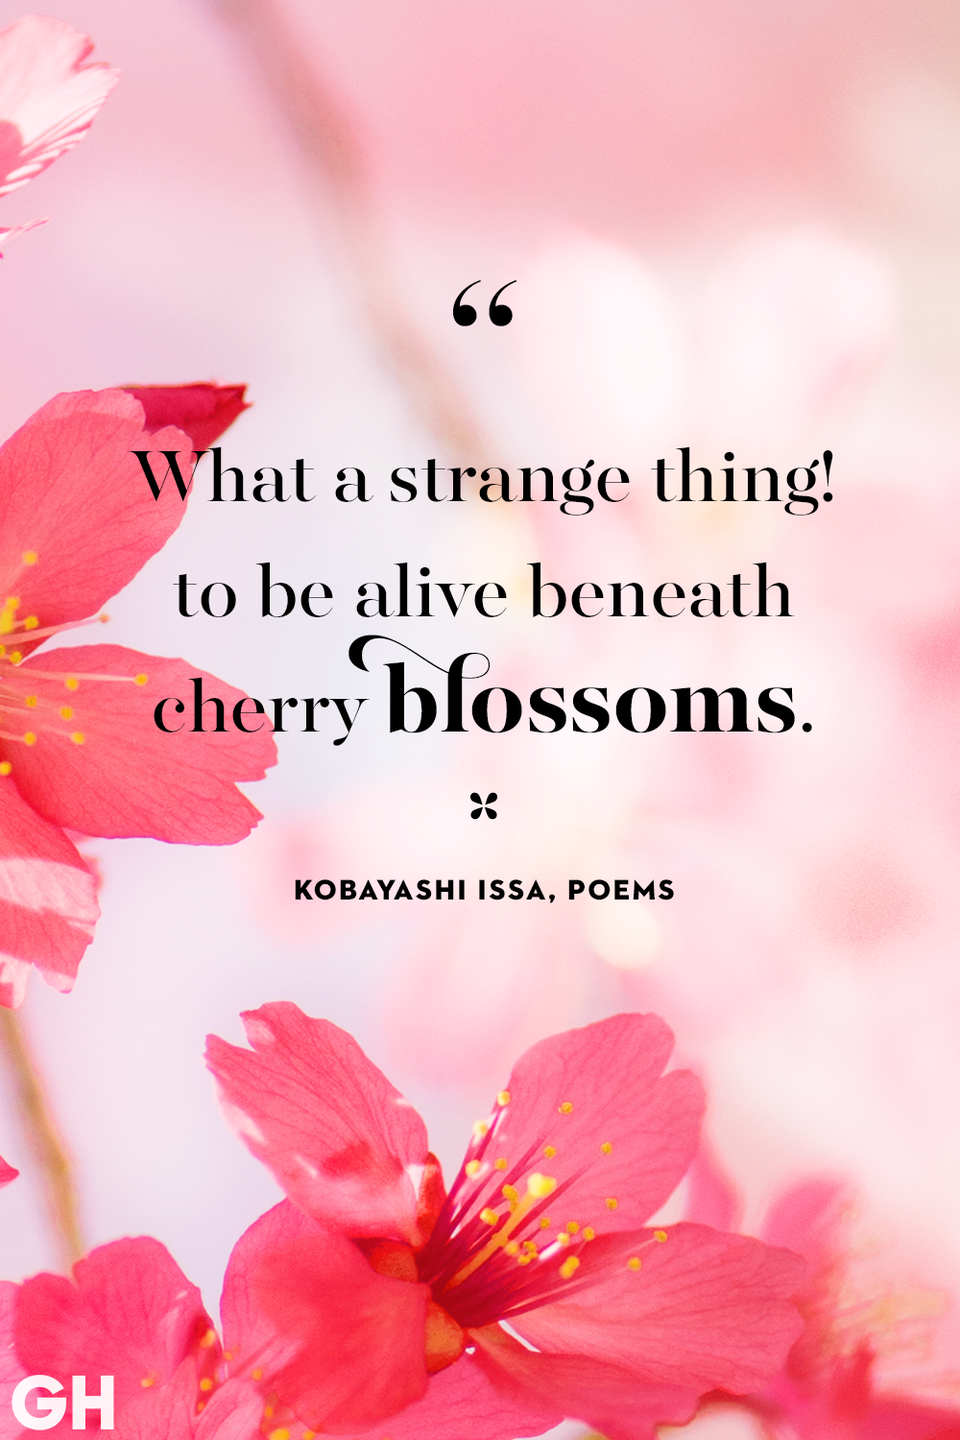 <p>What a strange thing! to be alive, beneath cherry blossoms.</p>